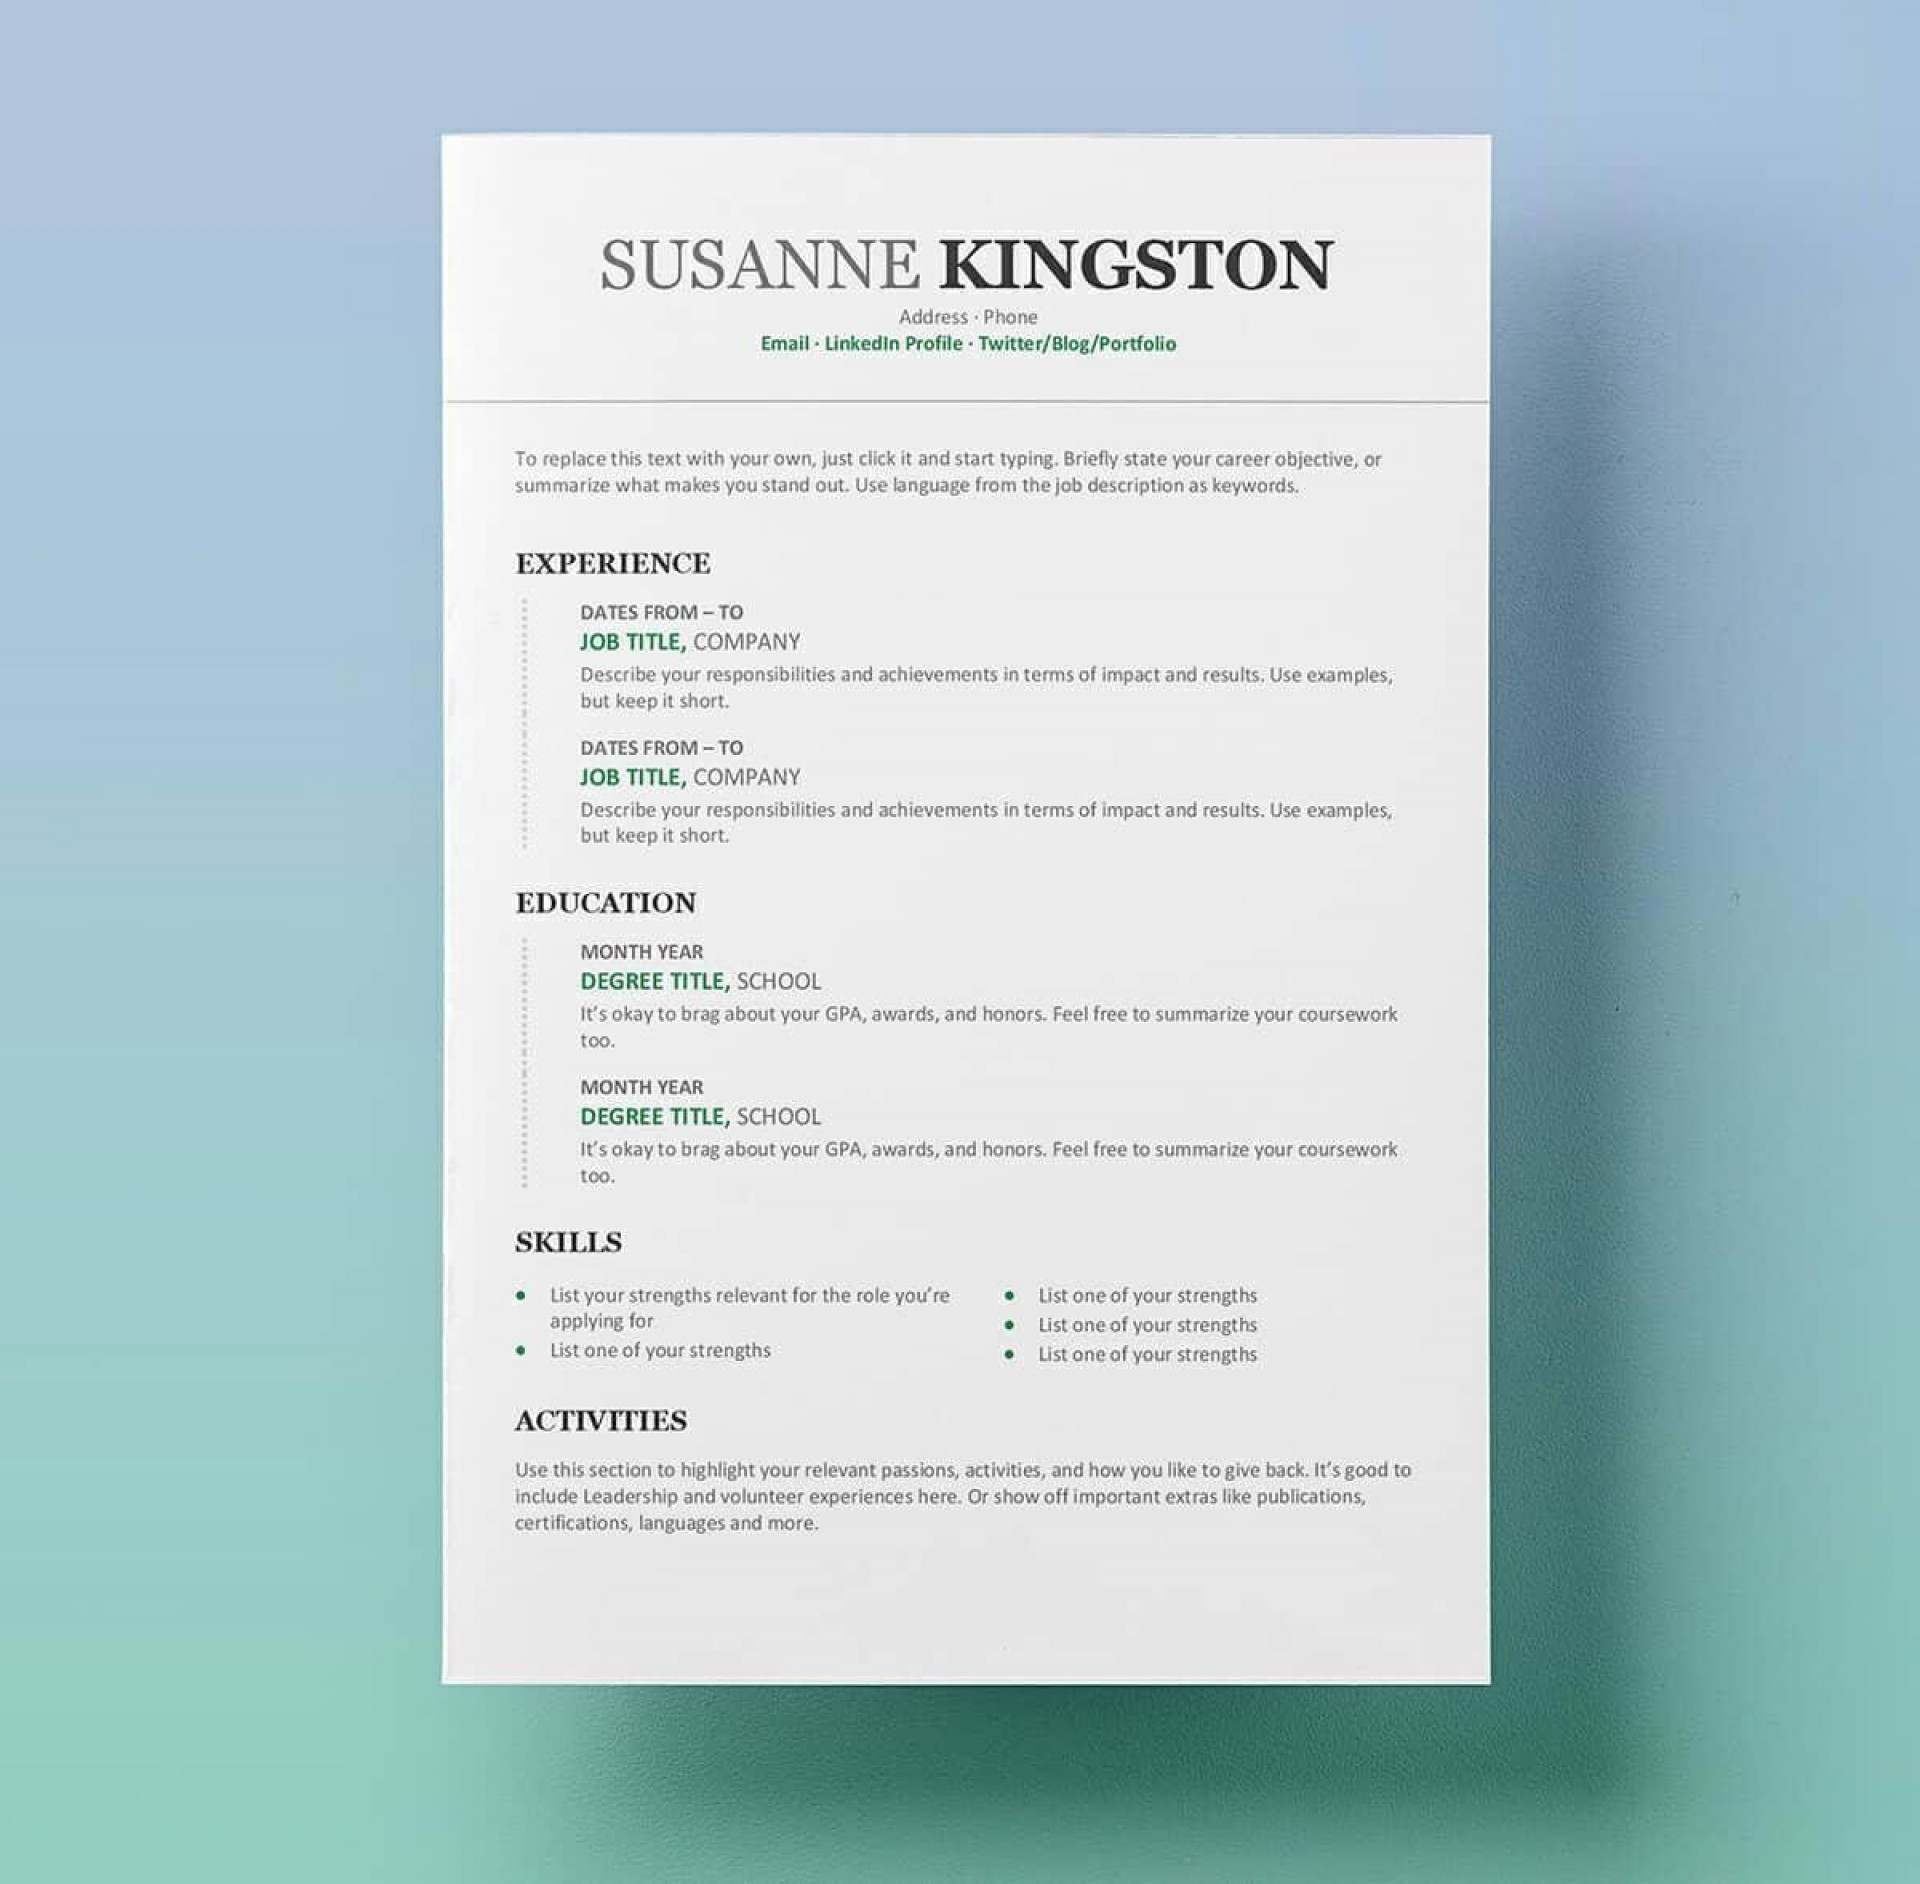 001 Simple Resume Template For Word Free Design  Creative Curriculum Vitae Download M1920